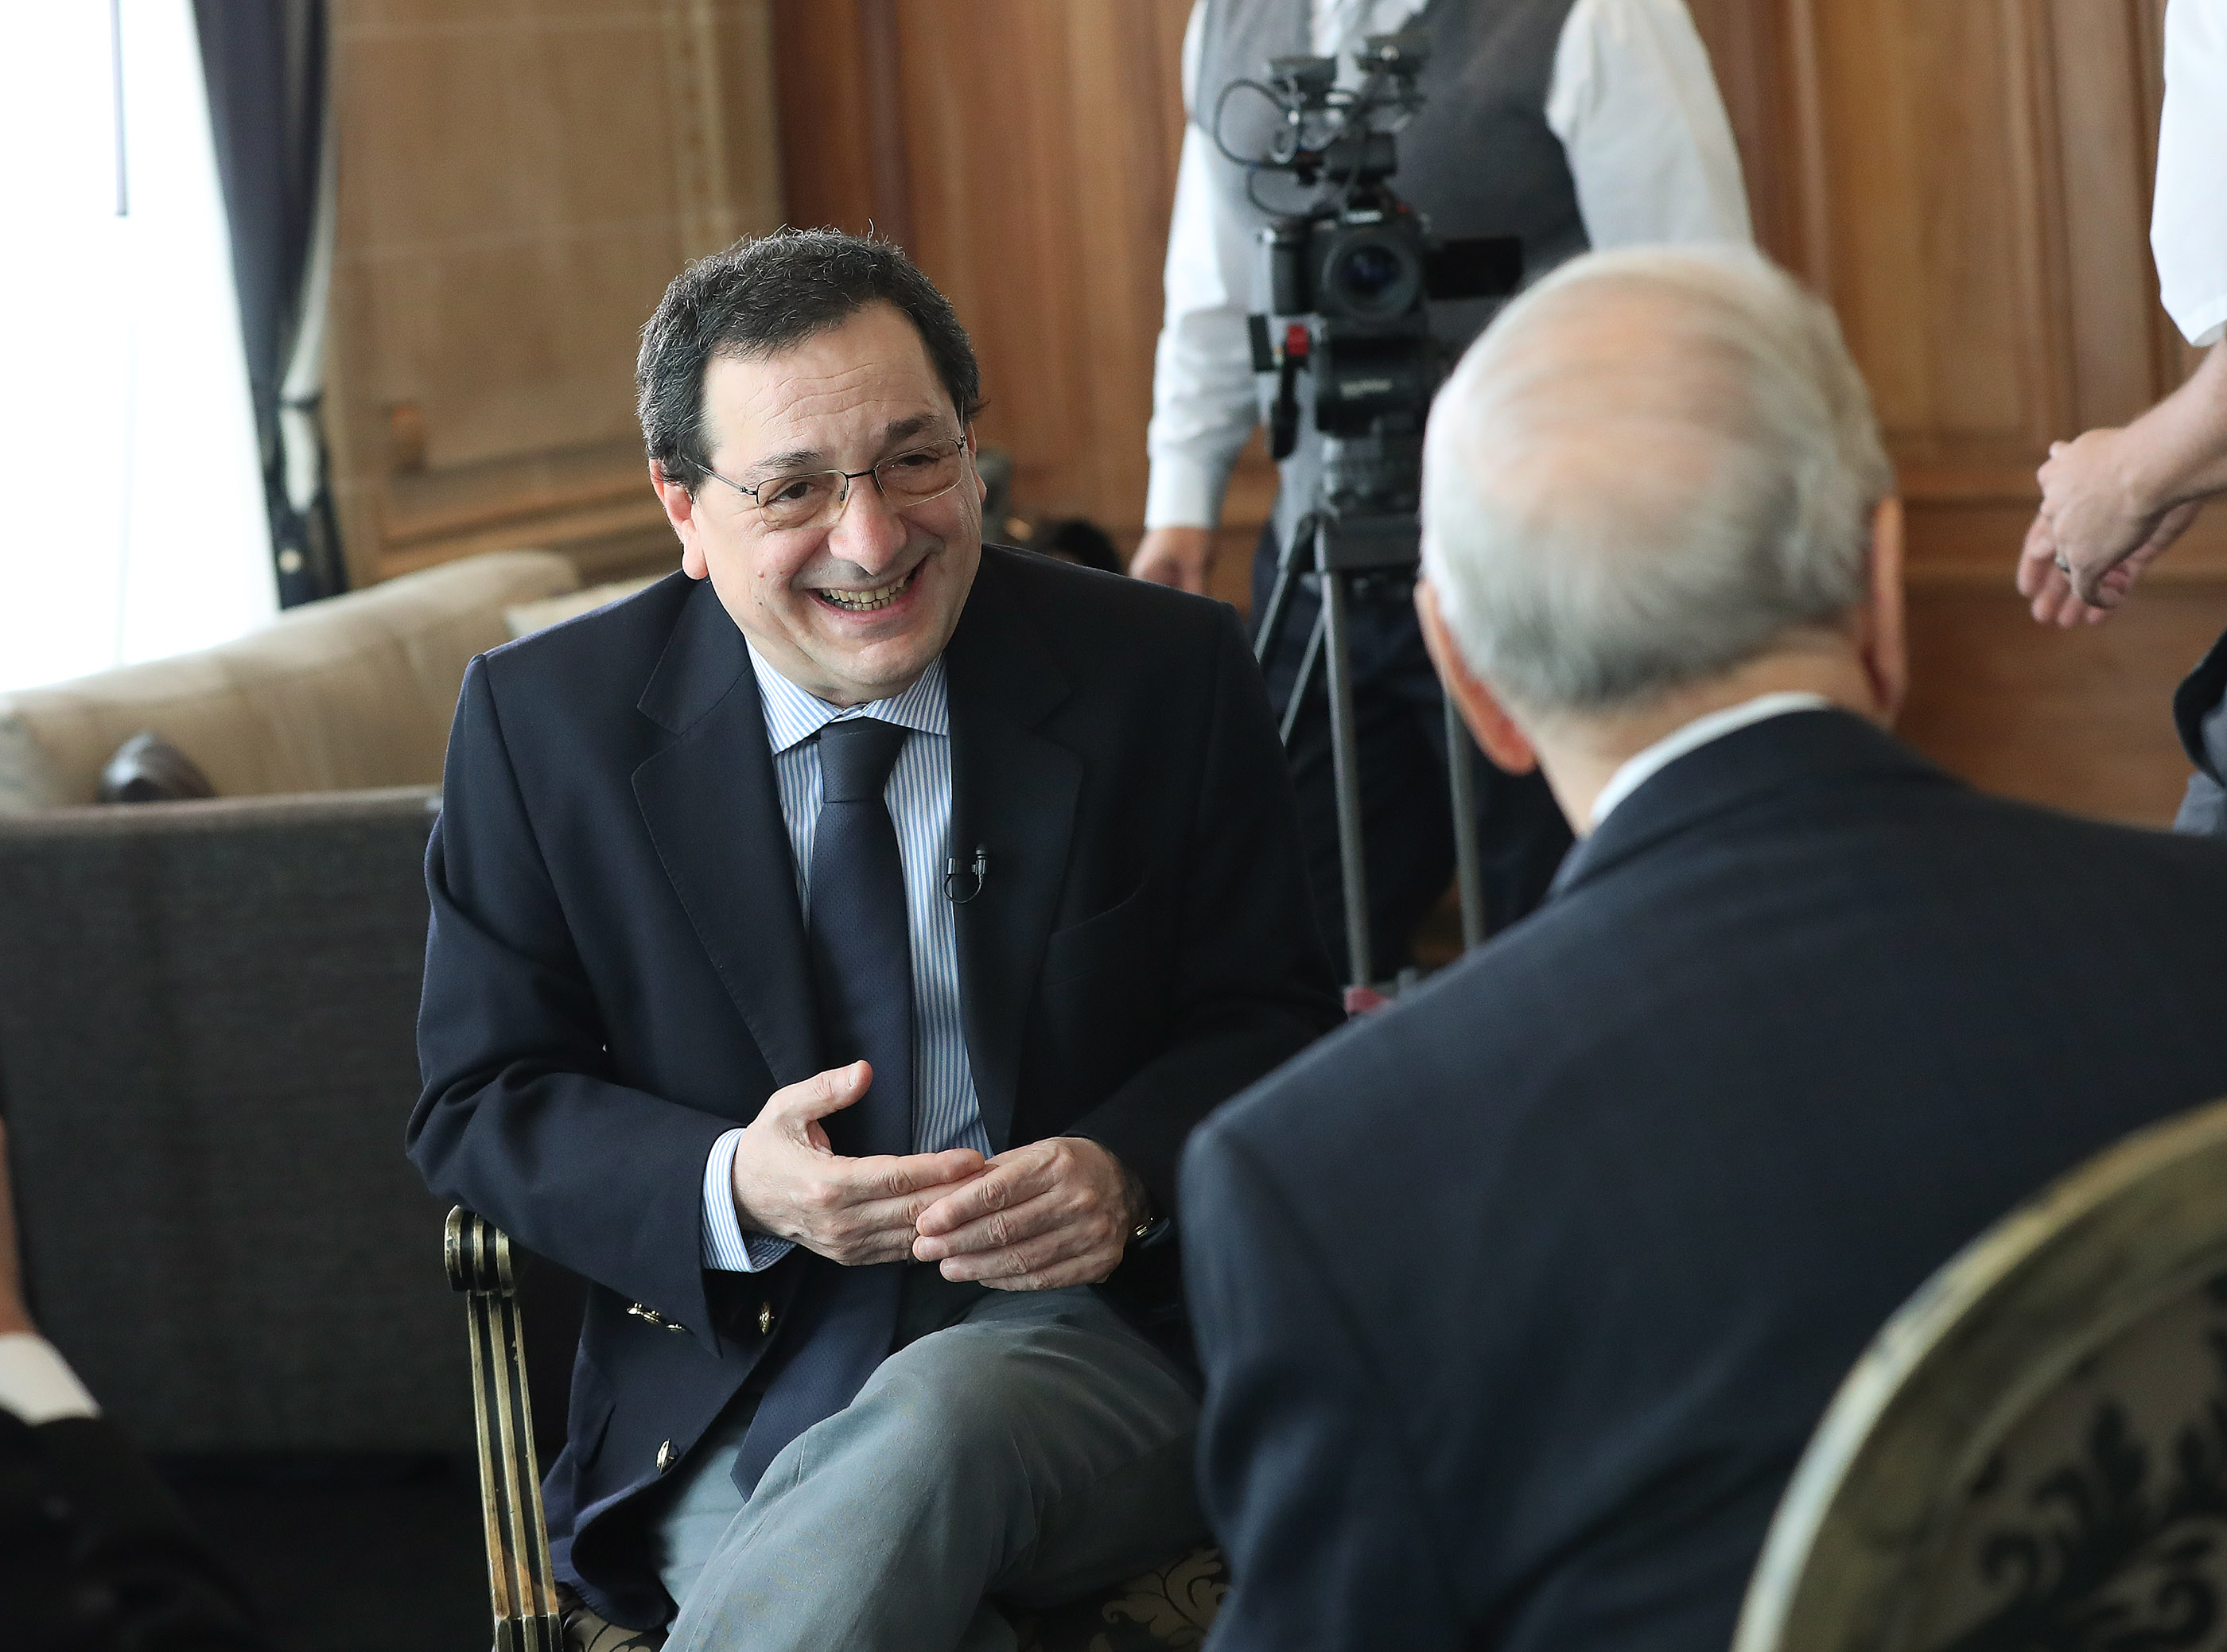 Sergio Rubin, Argentine journalist and biographer of Pope Francis, interviews President Russell M. Nelson of The Church of Jesus Christ of Latter-day Saints in Montevideo, Uraguay on Oct. 26, 2018.